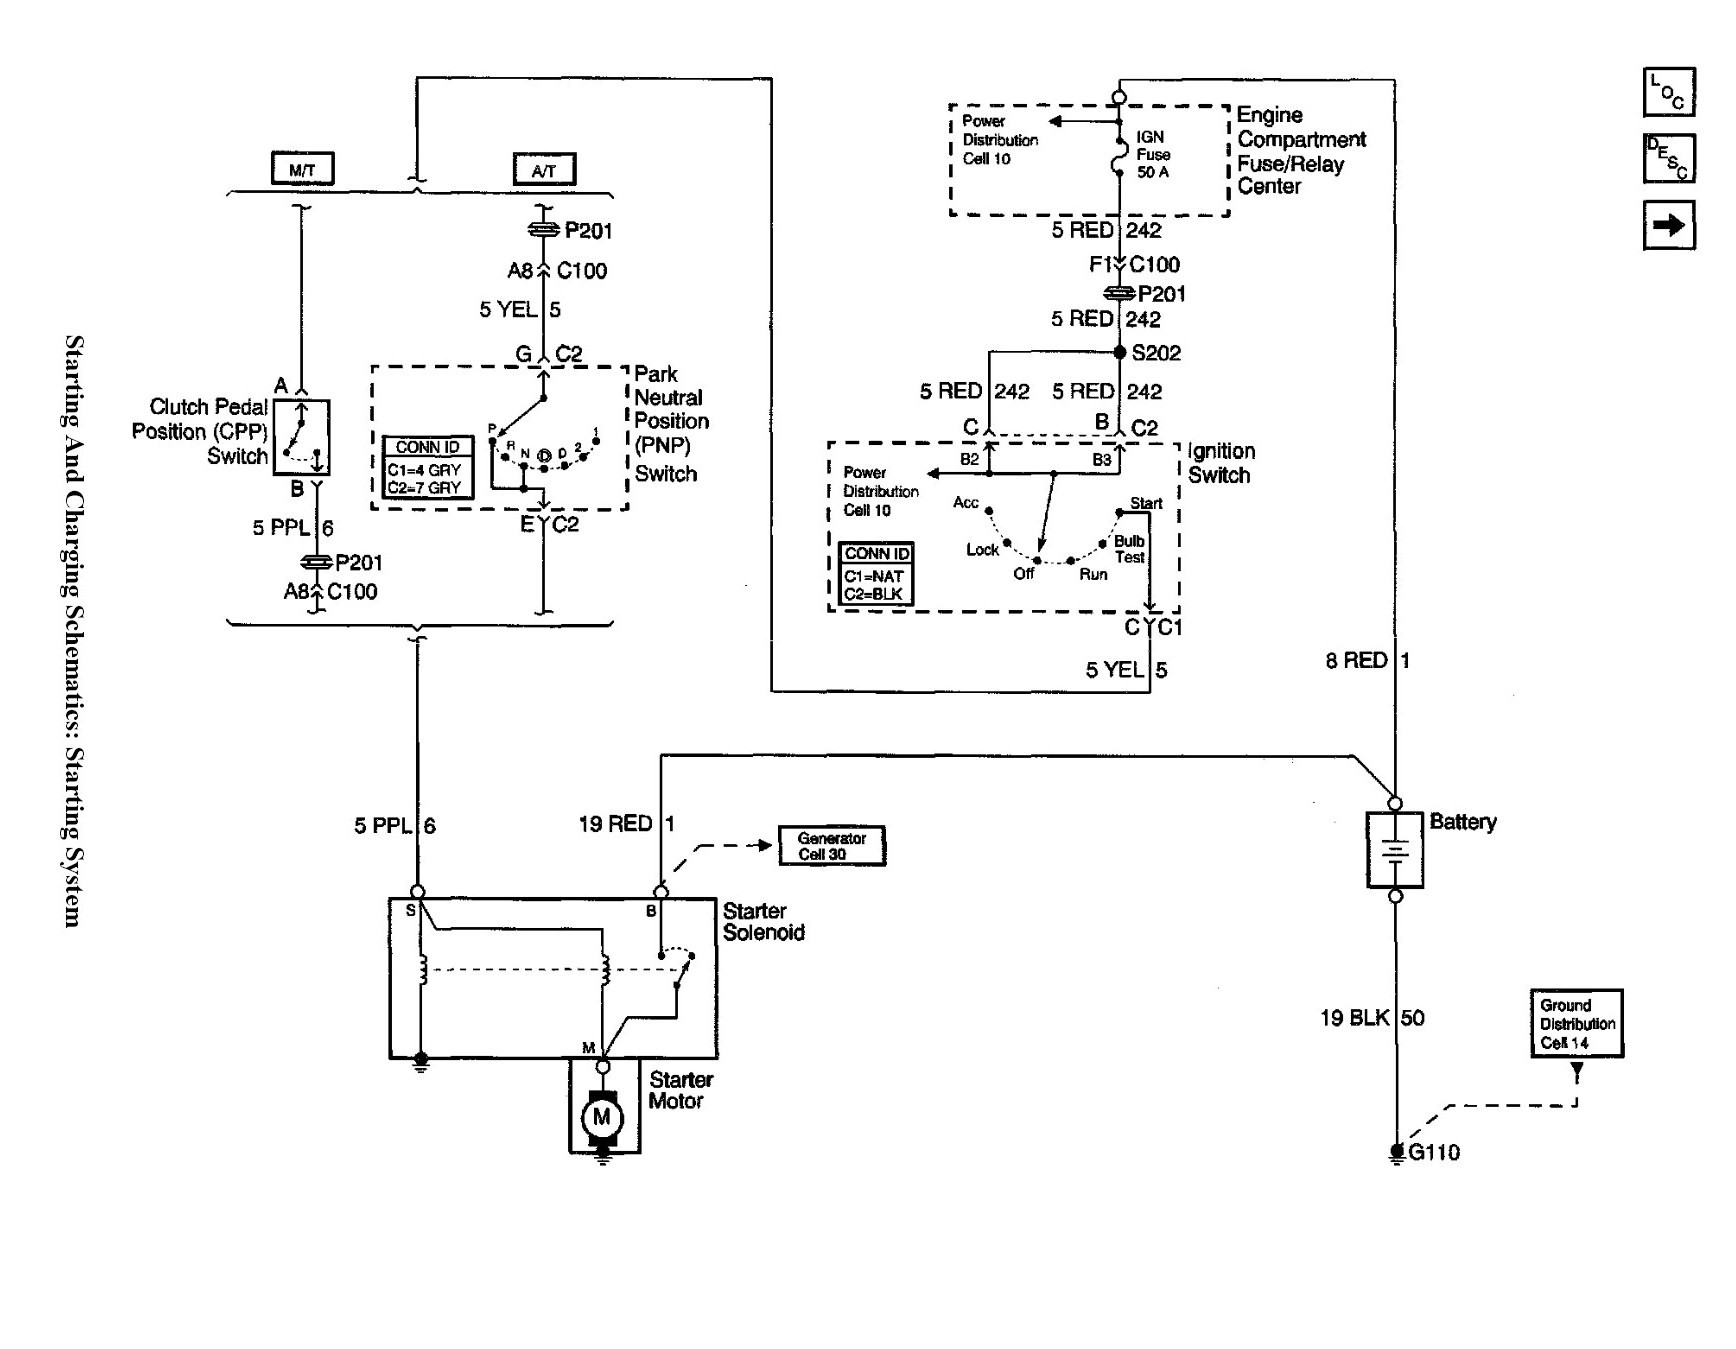 2000 Sunfire Ignition Switch Wiring Diagram Library For Pontiac Gt Car Will Not Turn Over When Trying To Start Graphic